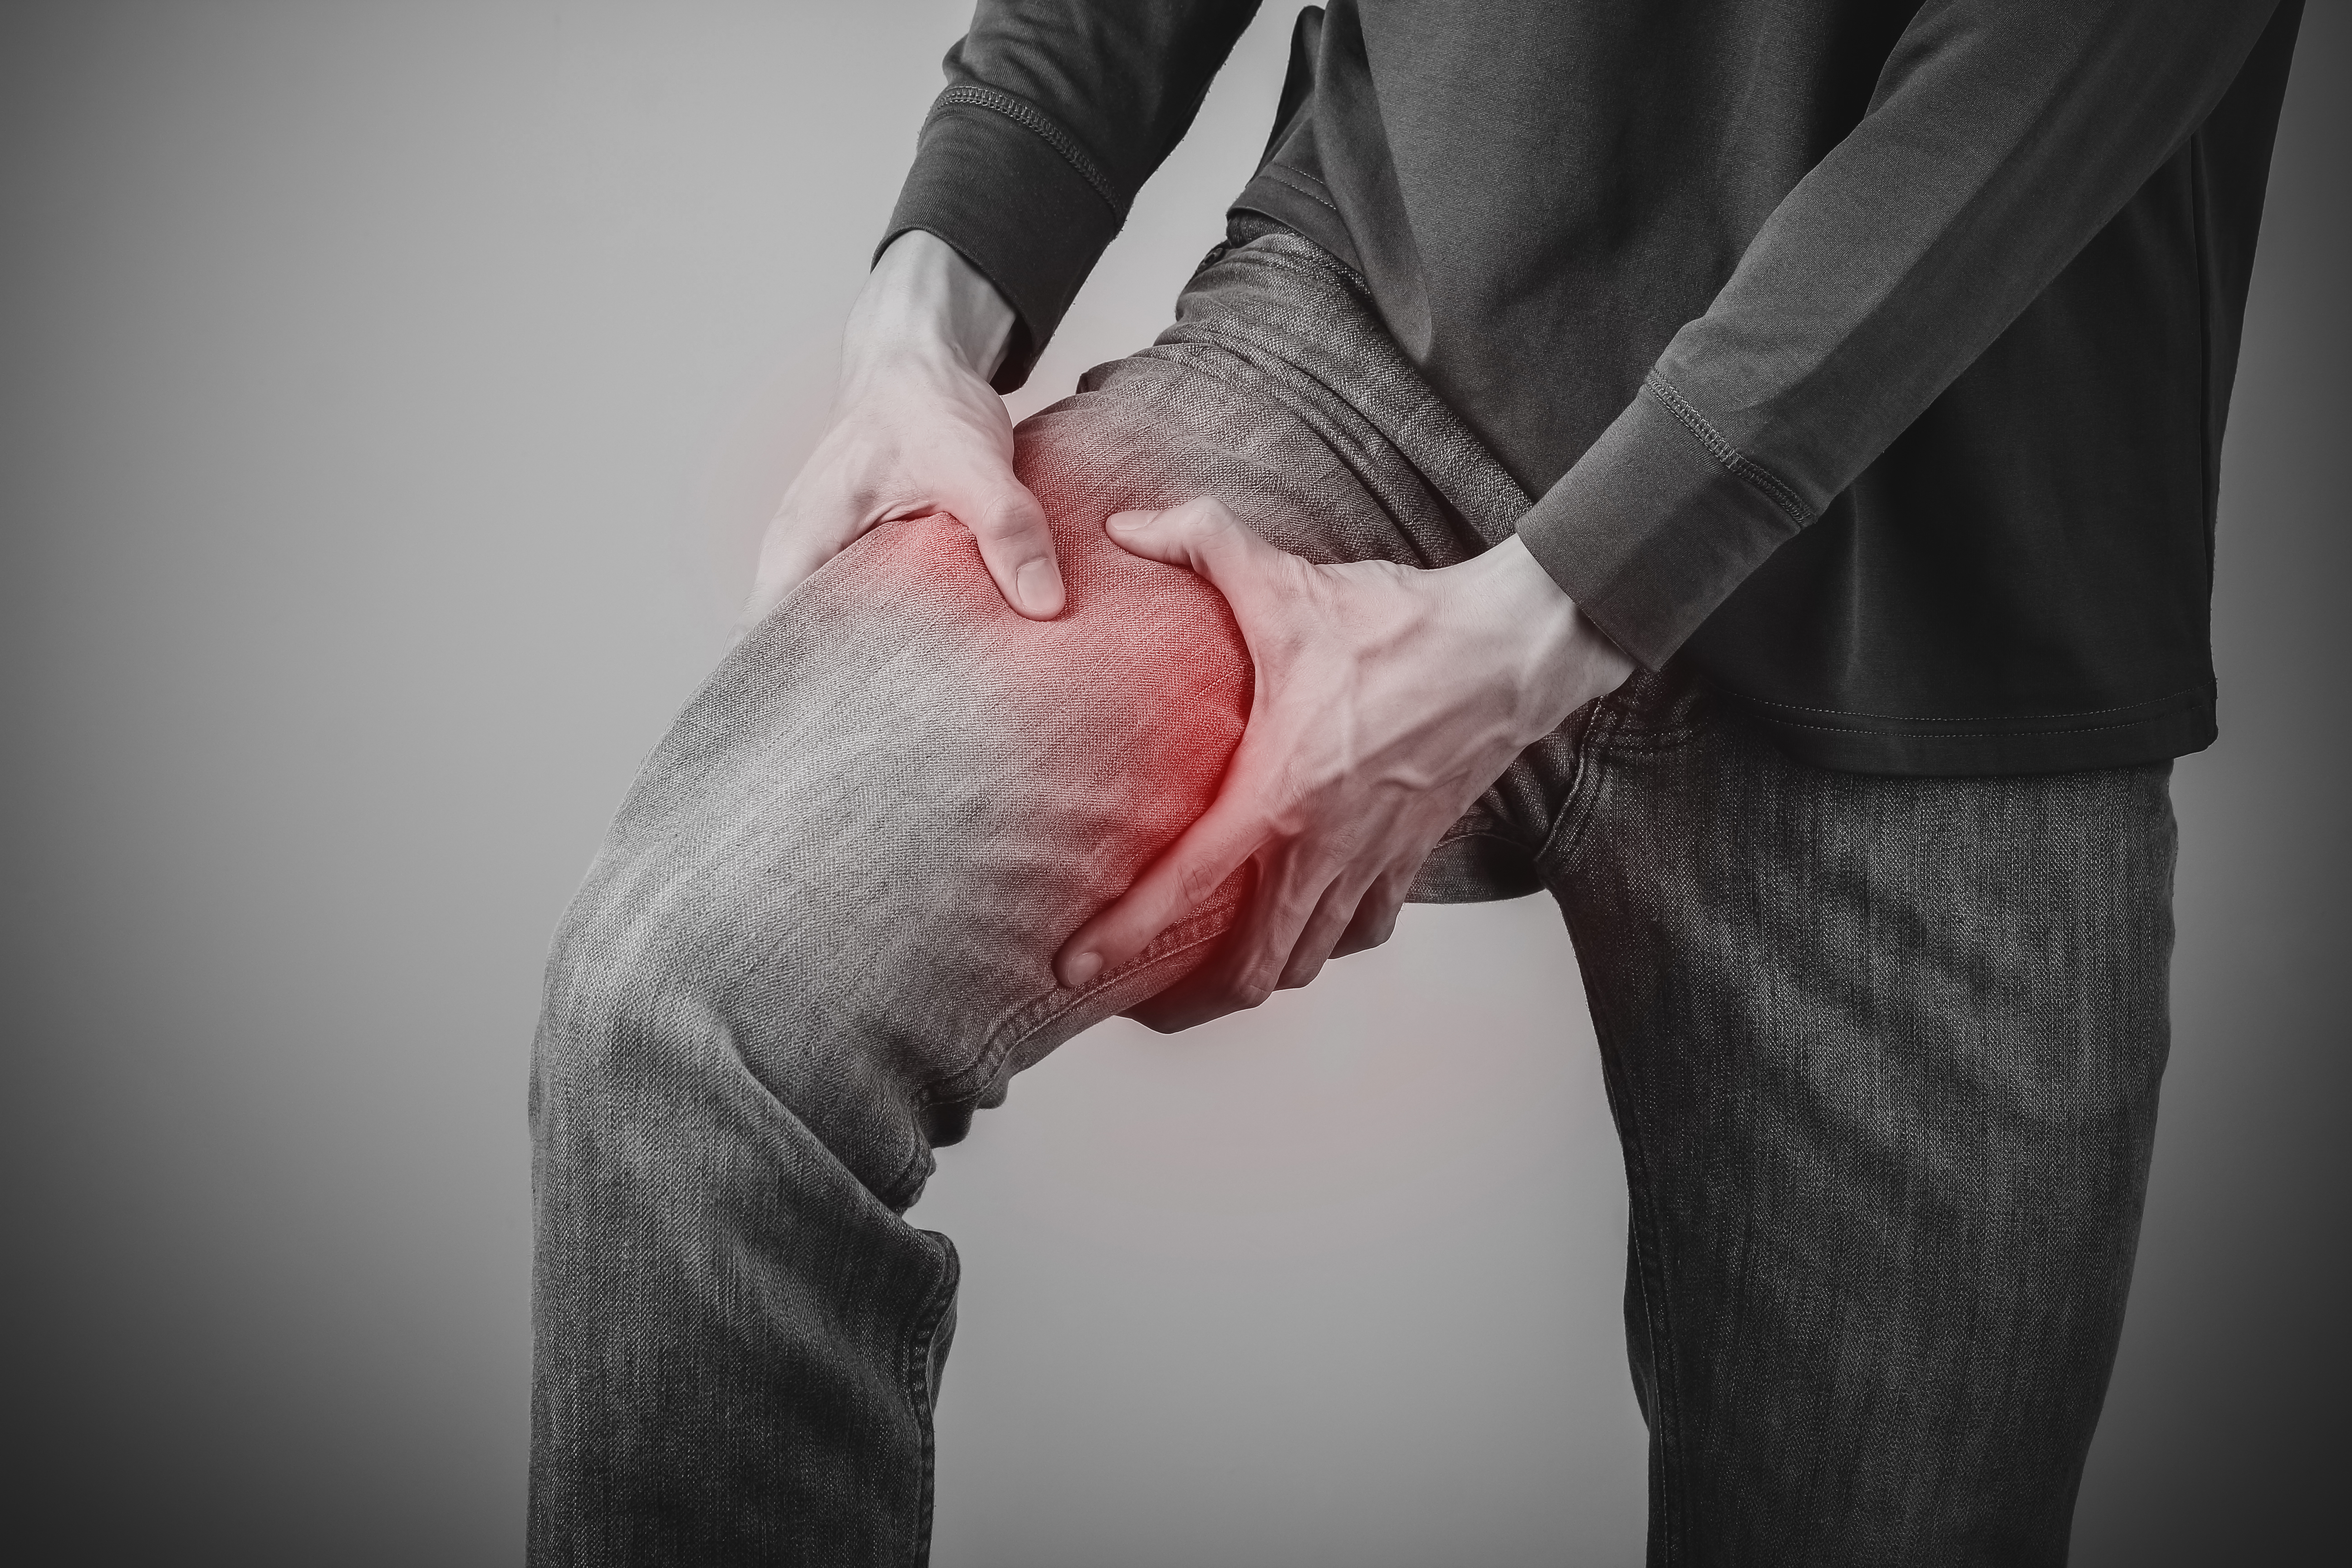 Why Does Hip Replacement Cause Sore Thigh Muscles?